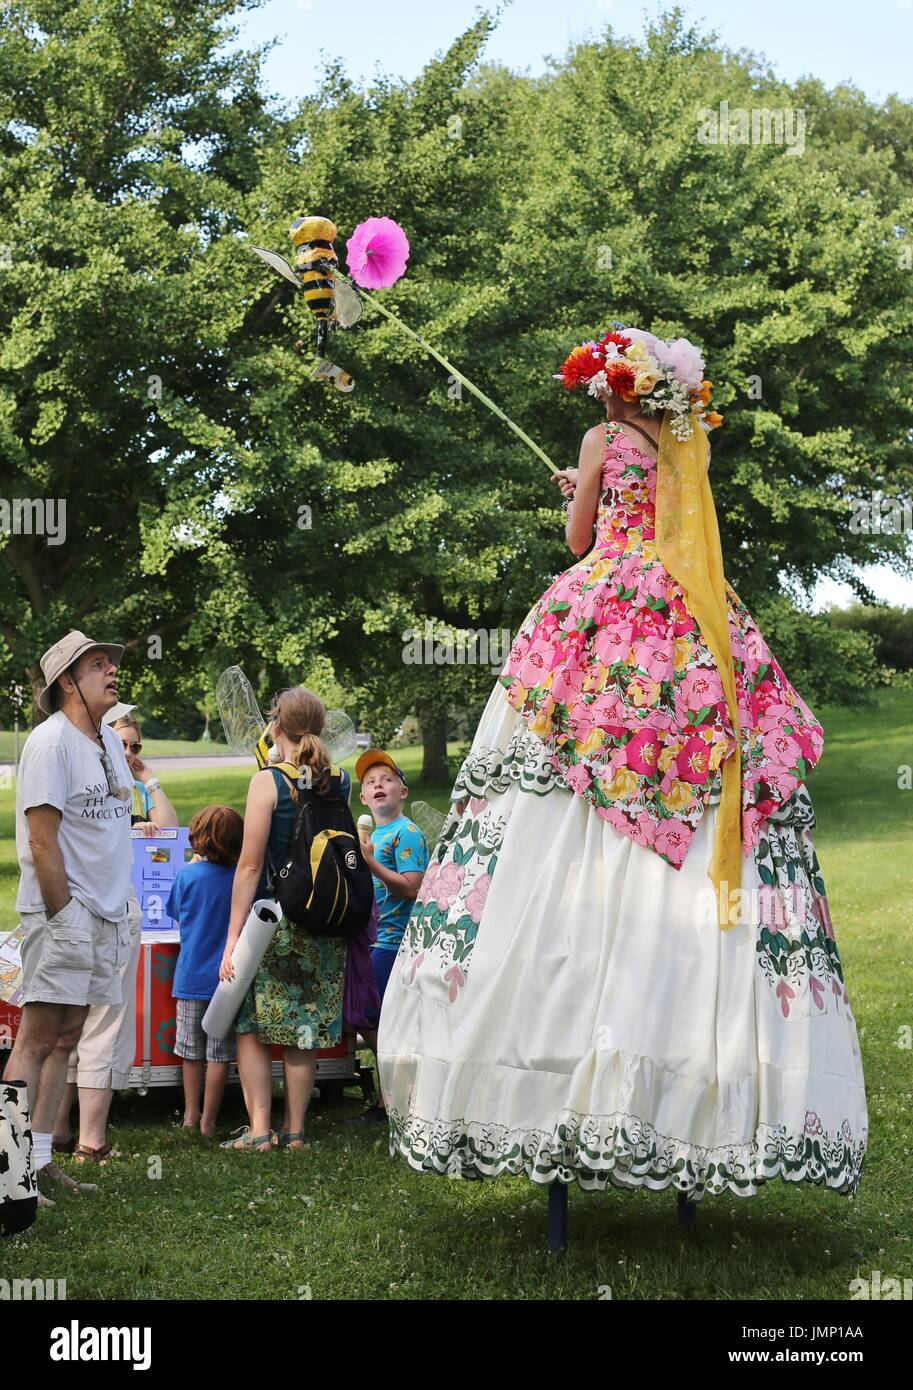 A woman on stilts, at the pollinator party in Minneapolis, Minnesota, USA. - Stock Image